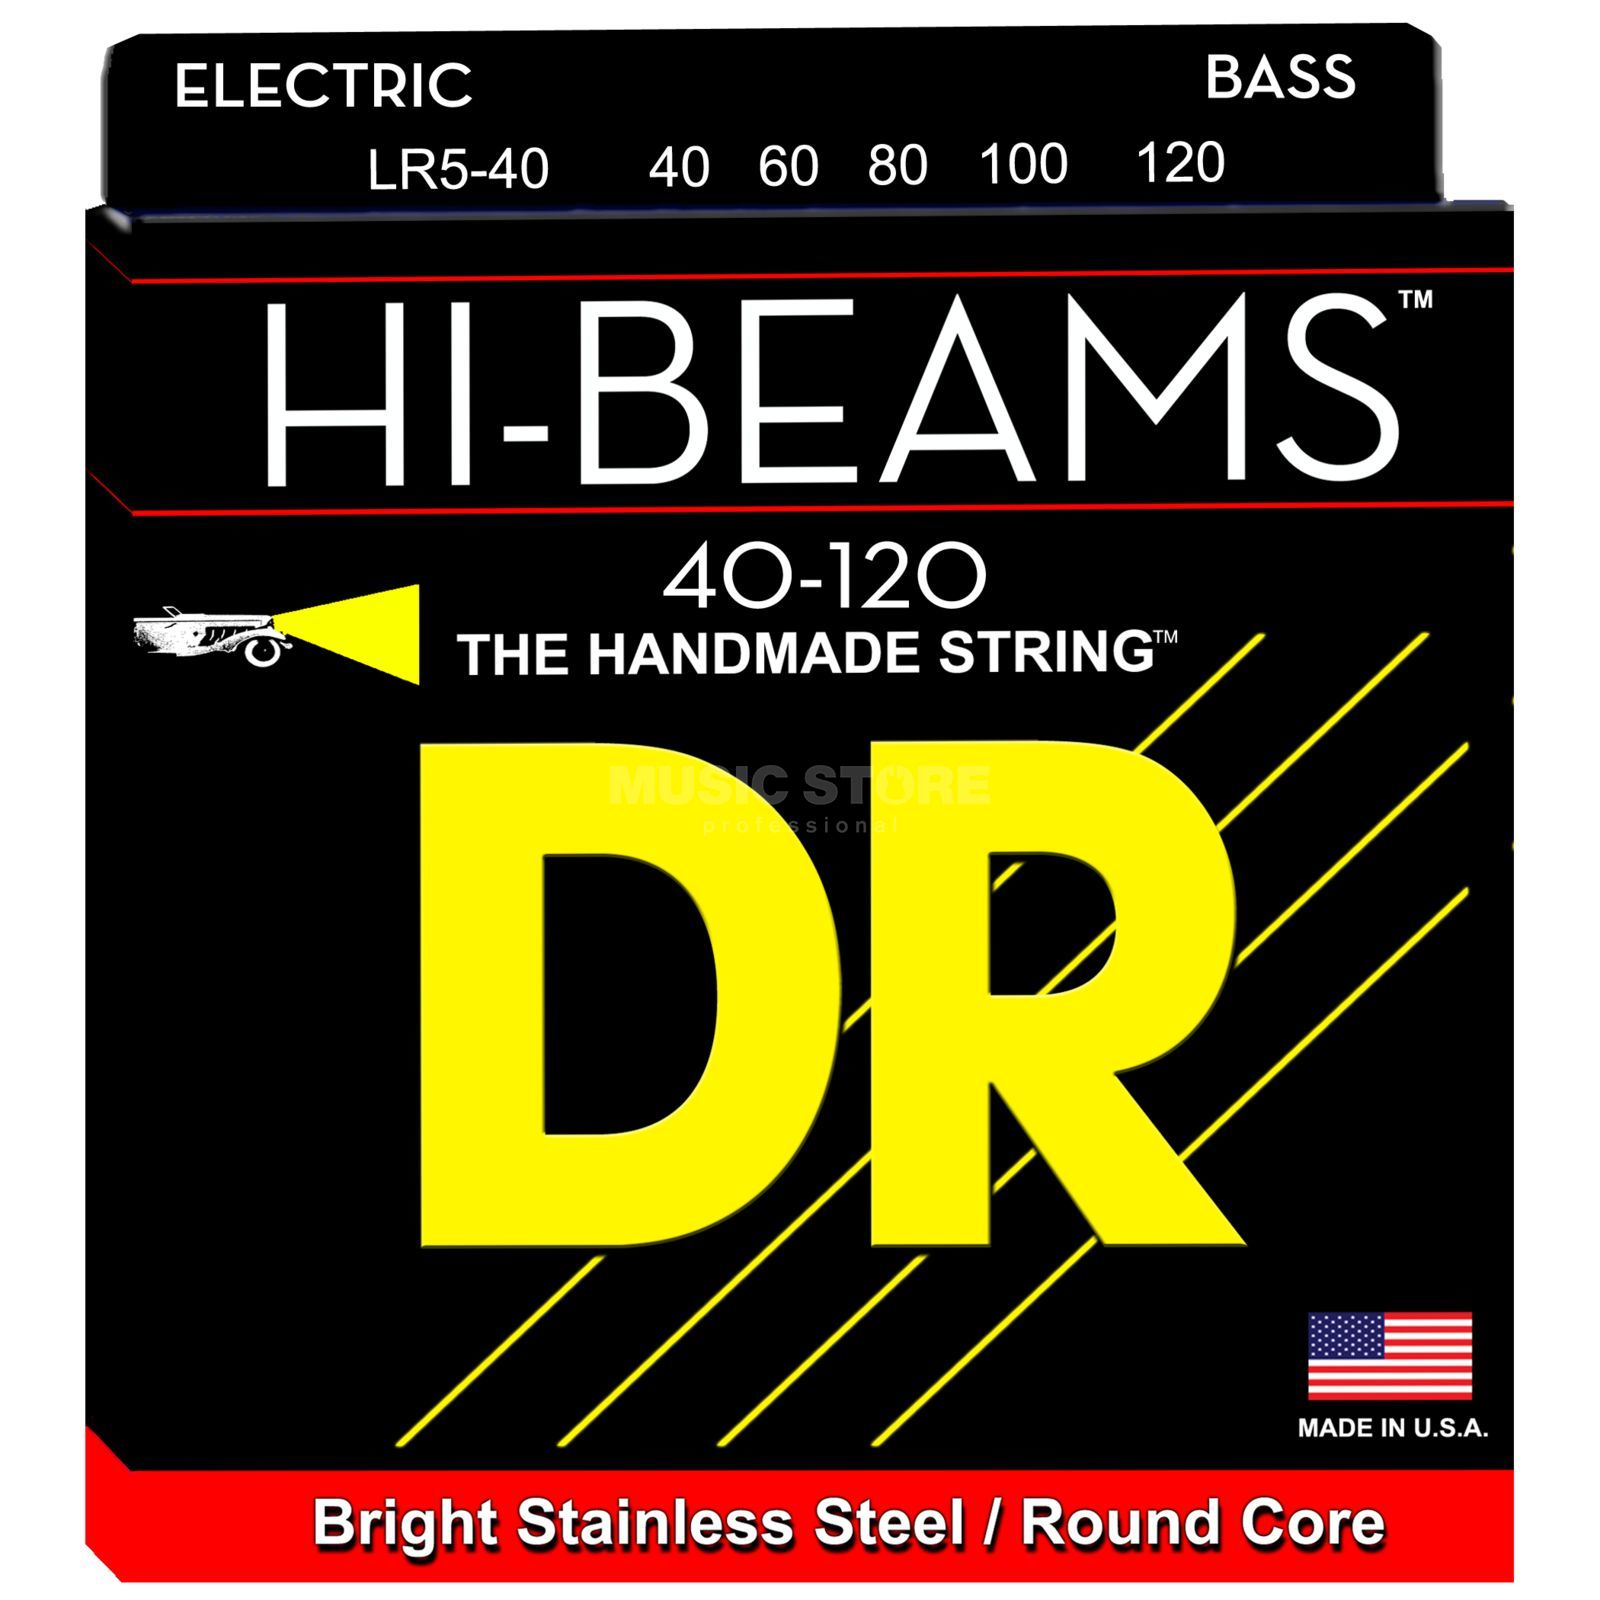 DR 5er bas 40-120 Hi-Beam Stainless Steel LR5-40 Productafbeelding